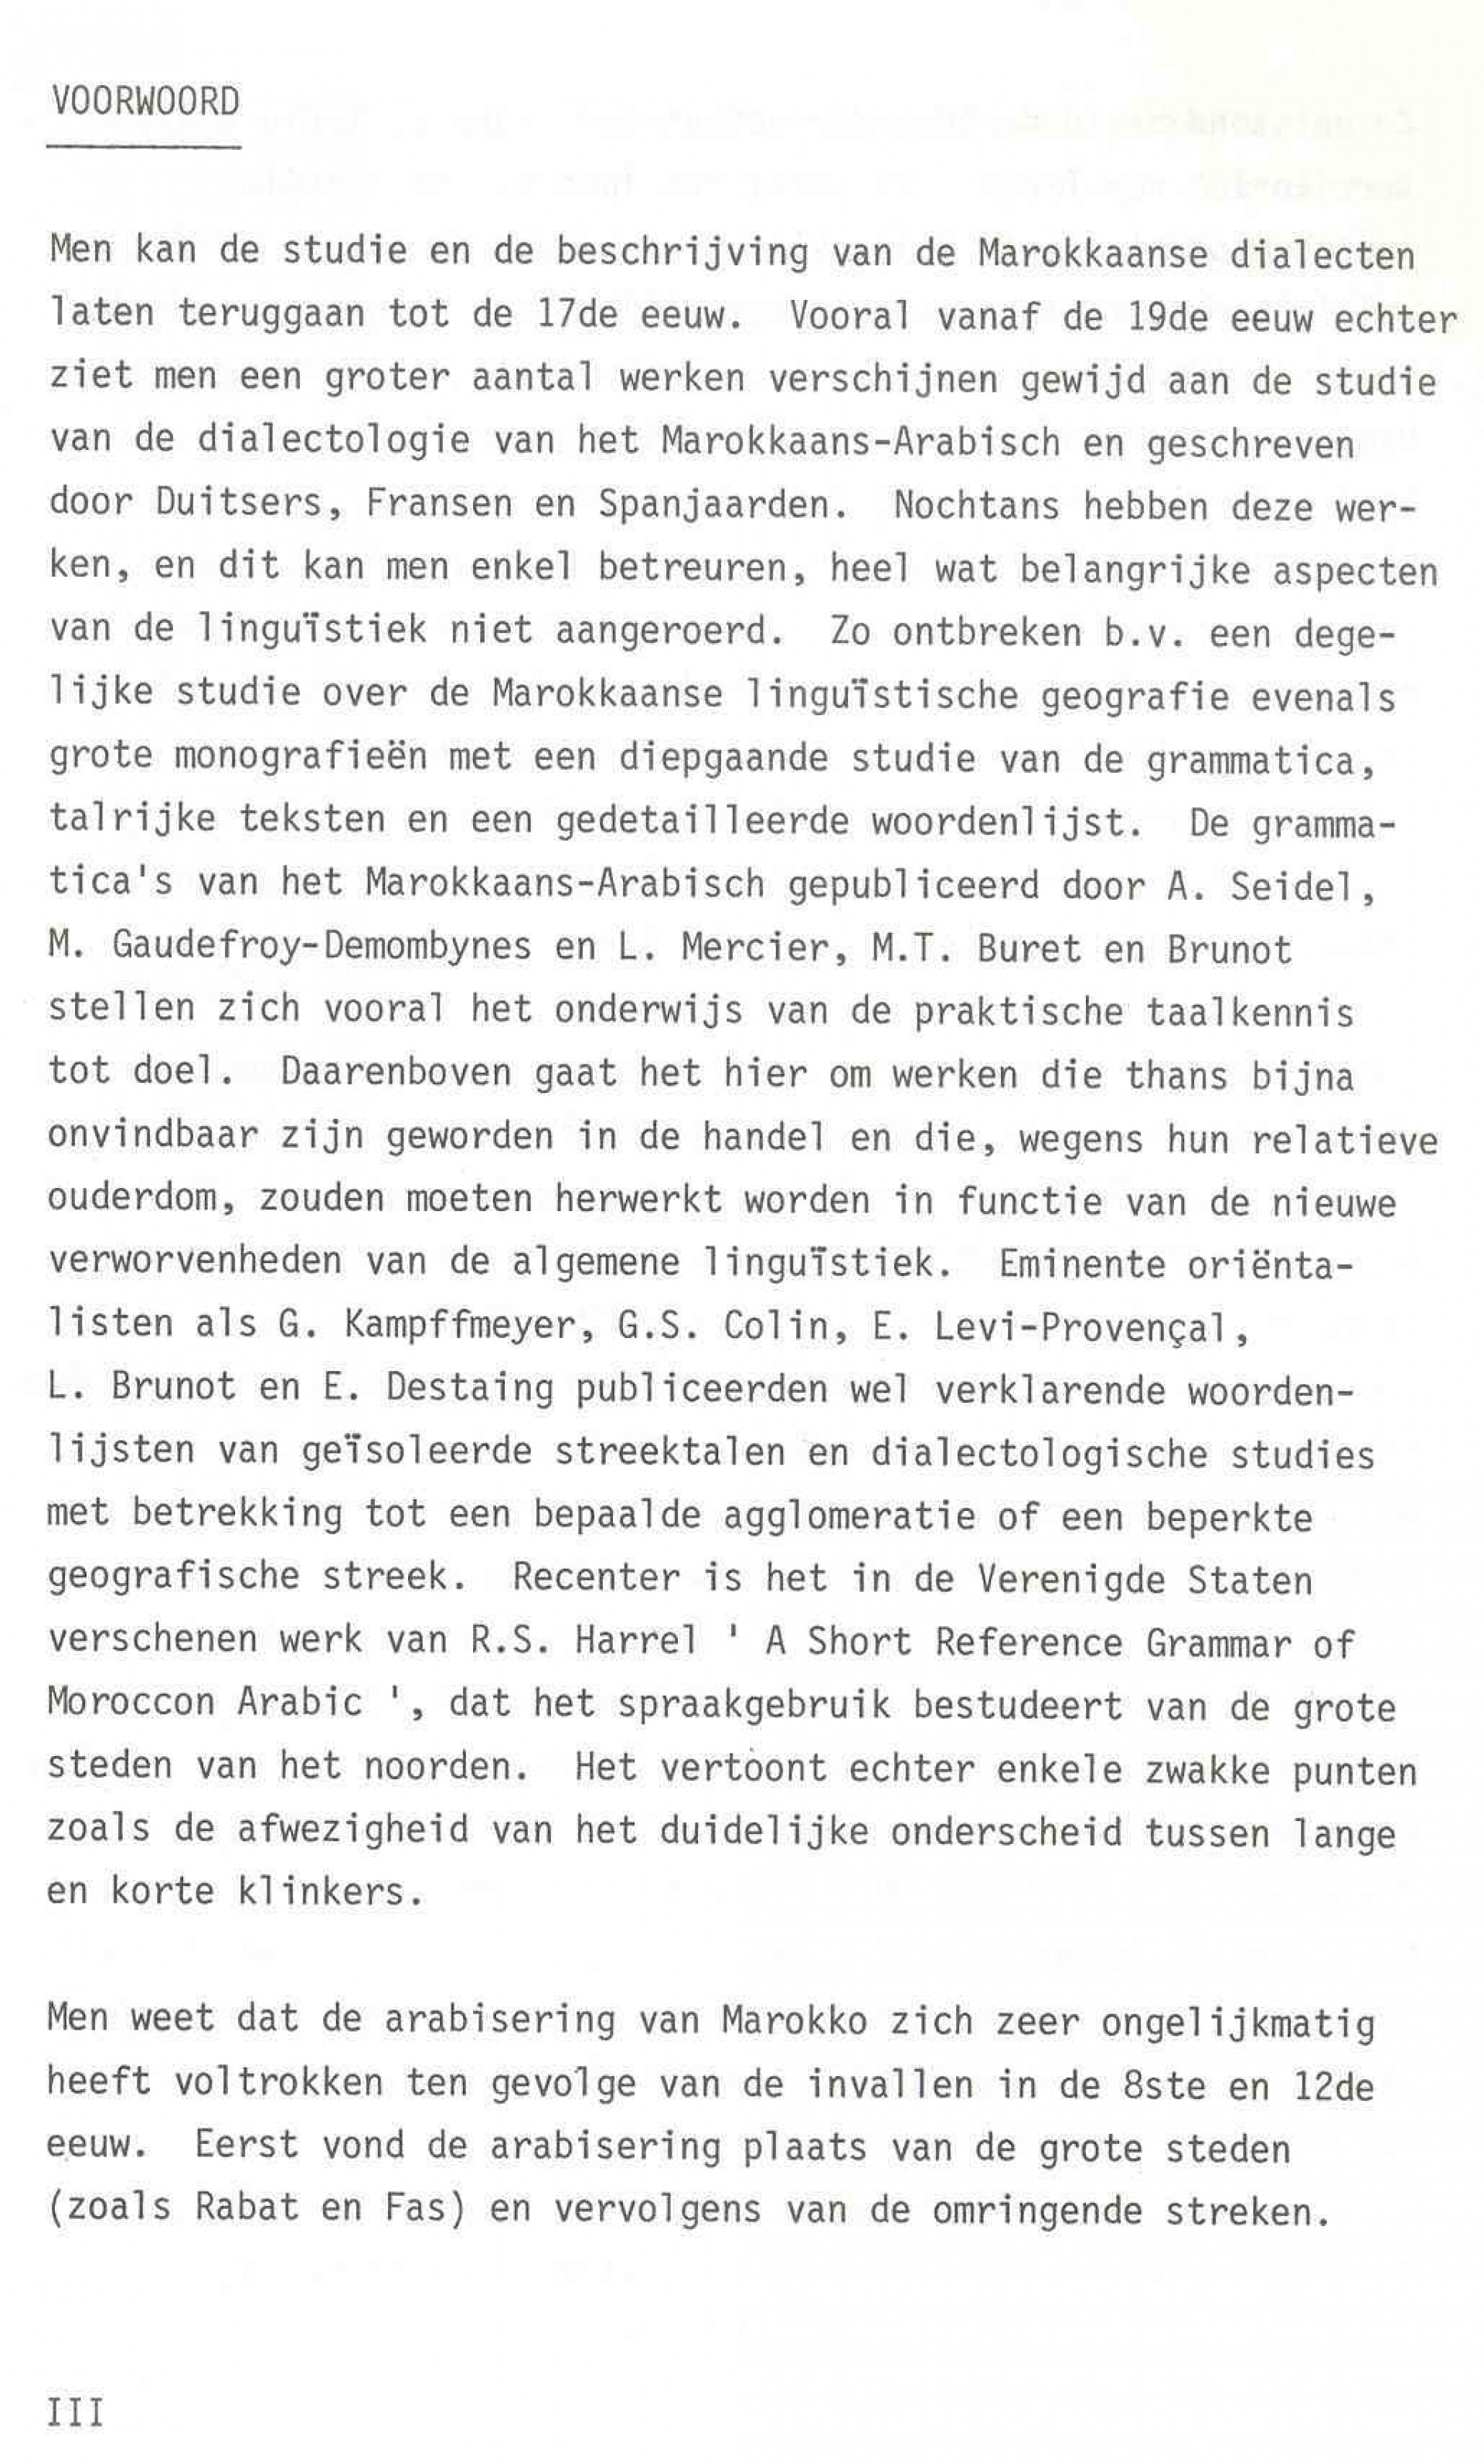 008 Voorwoord 01 Essay Example Dehumanization In Remarkable Night Conclusion 1920